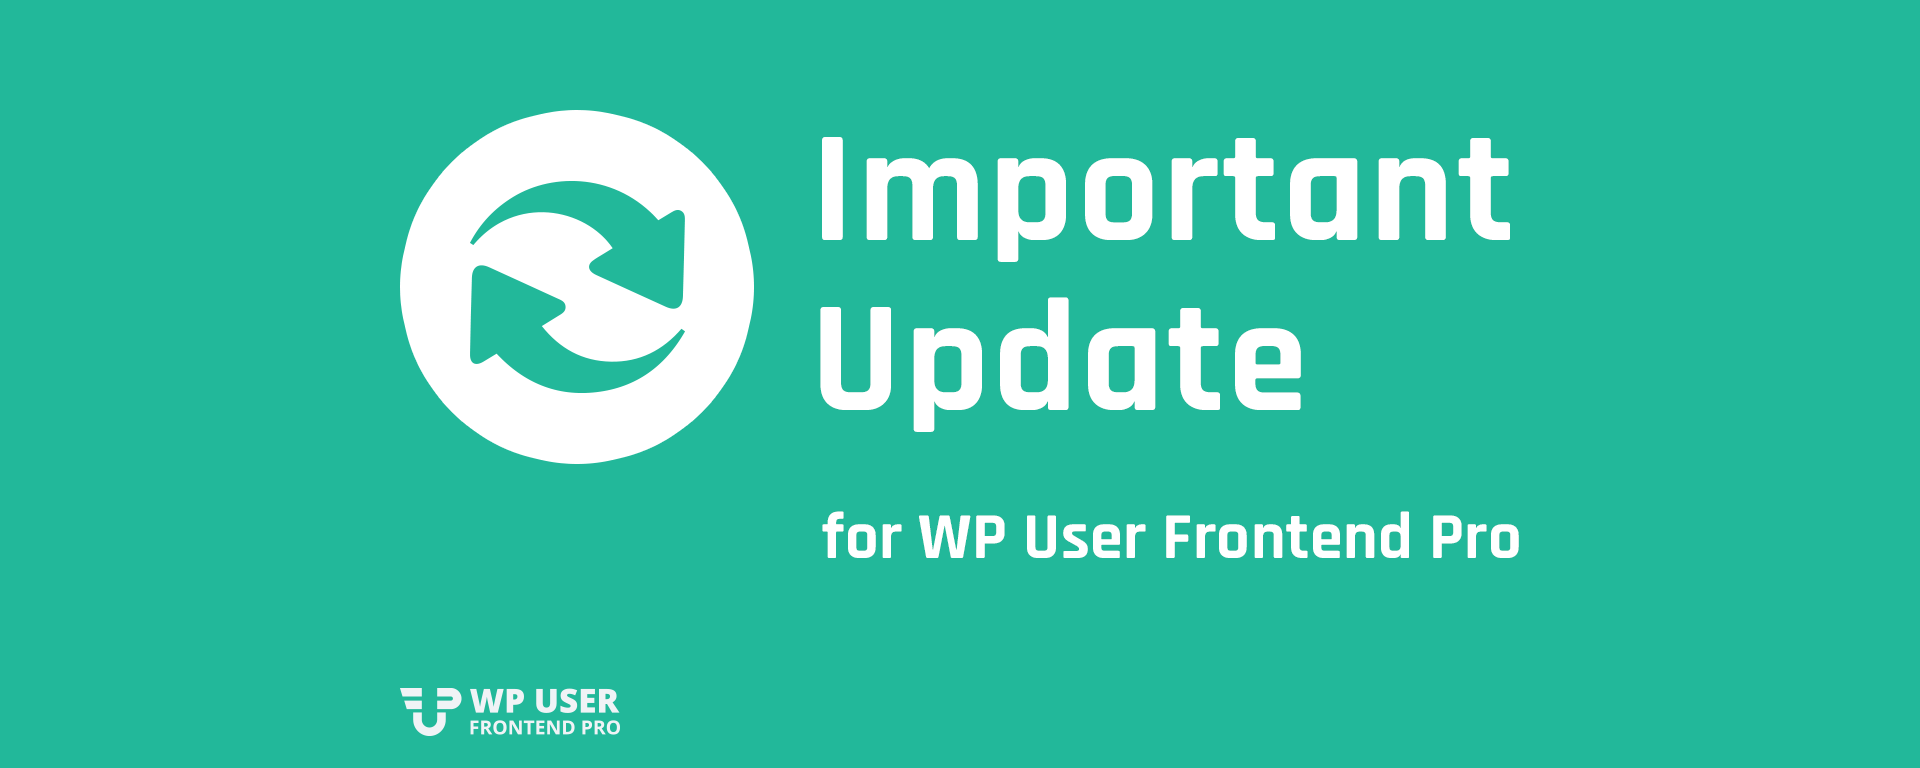 Important Update for WP User Frontend Pro